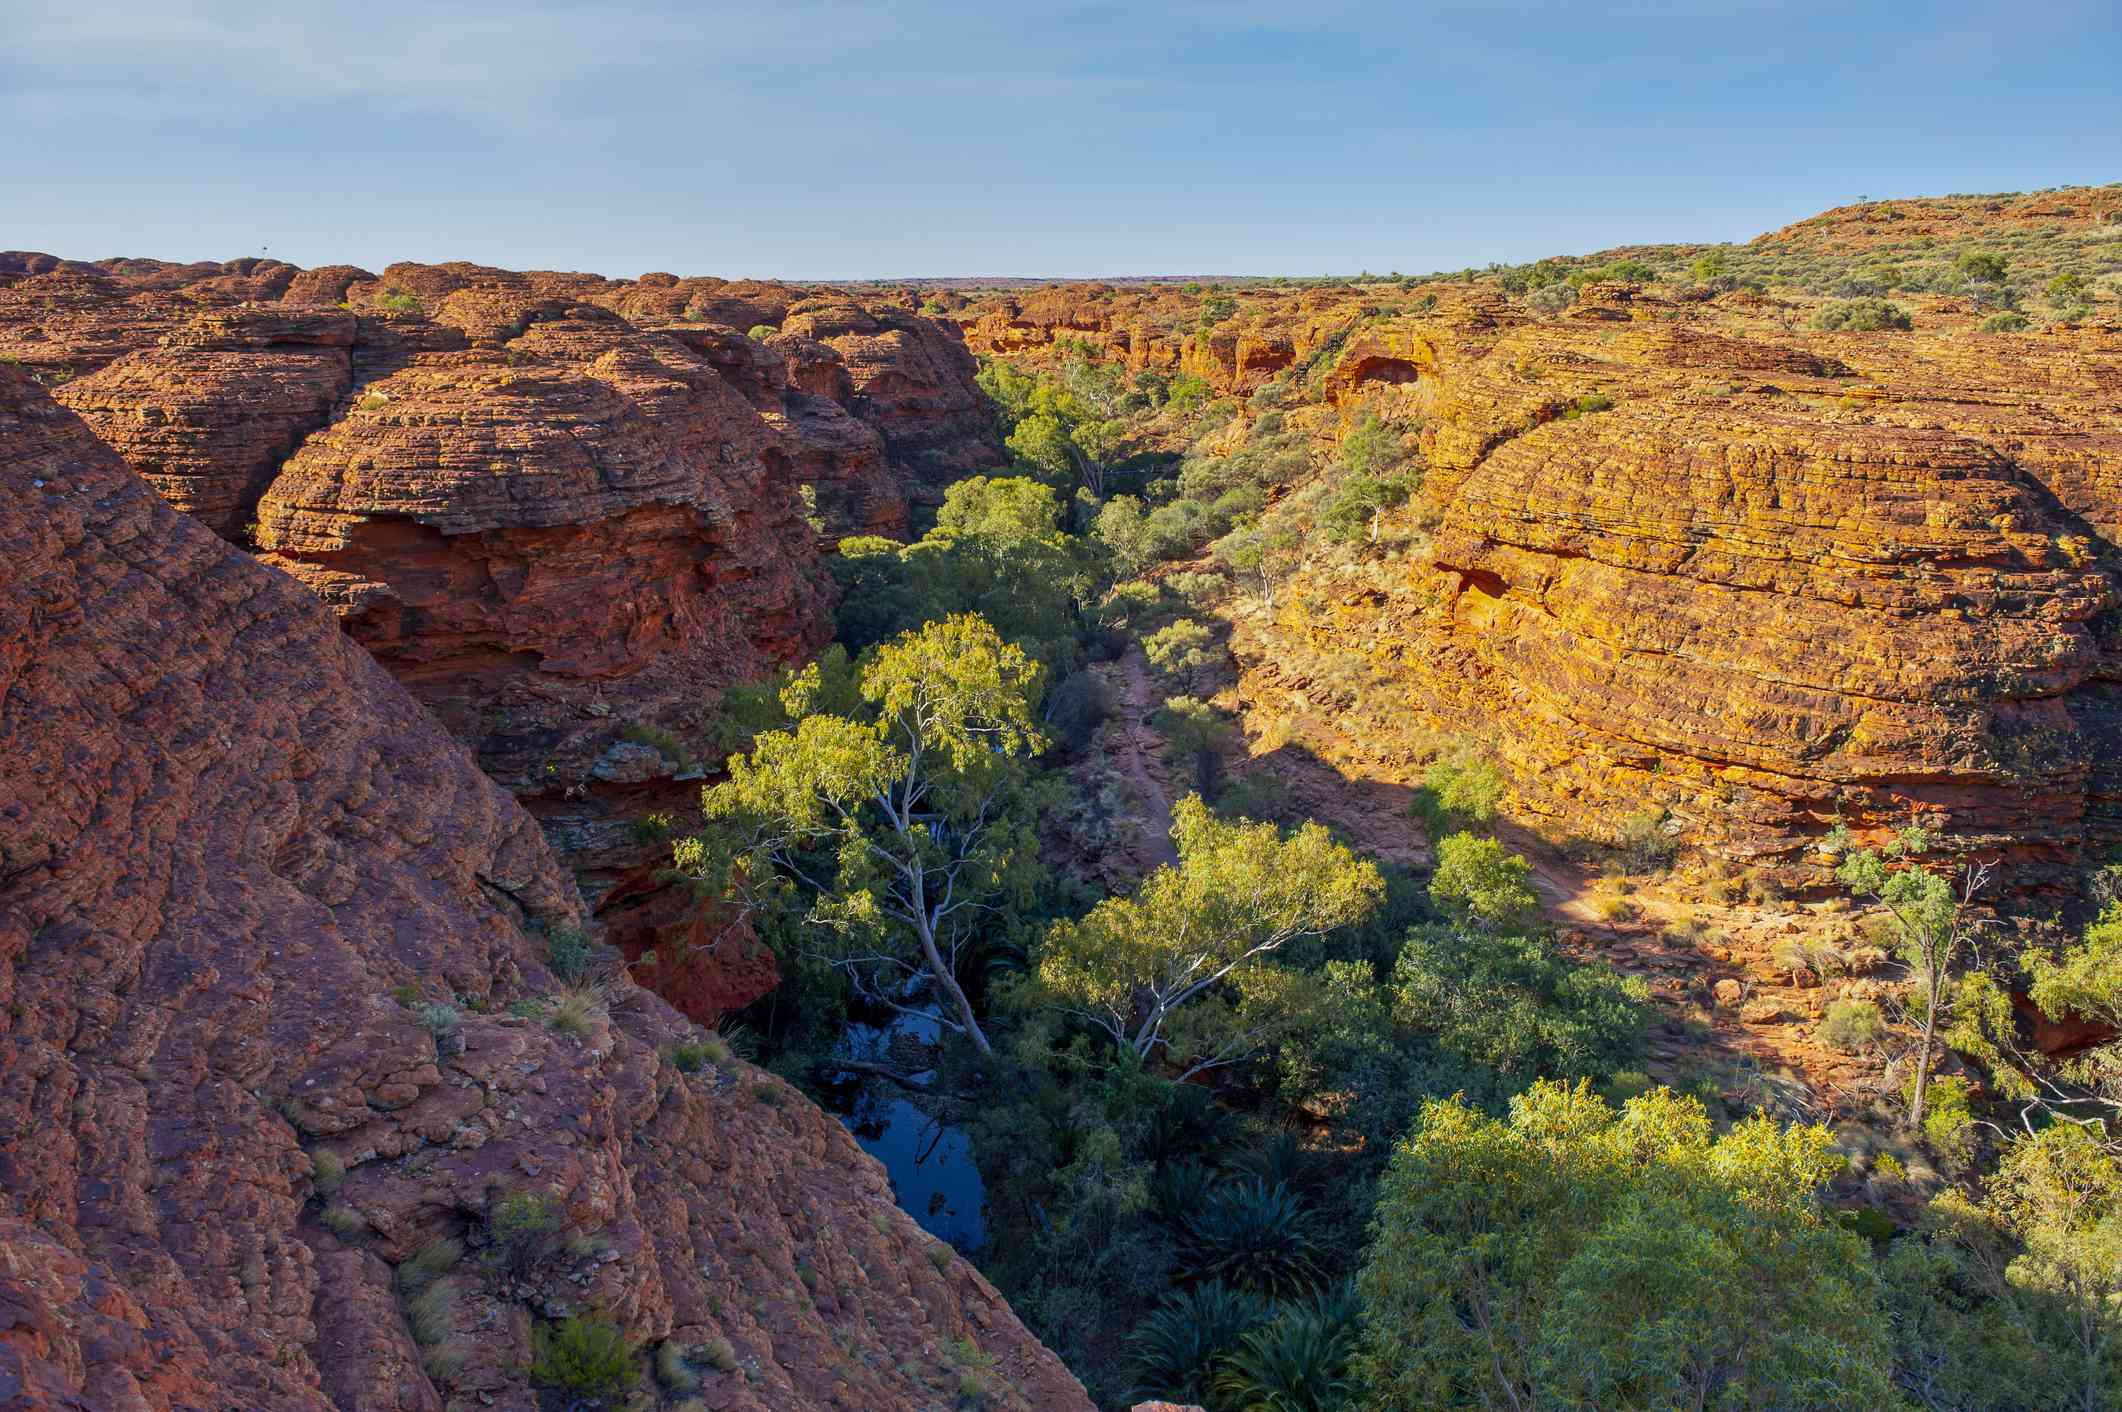 Red rock canyon with river and green foliage in the valley